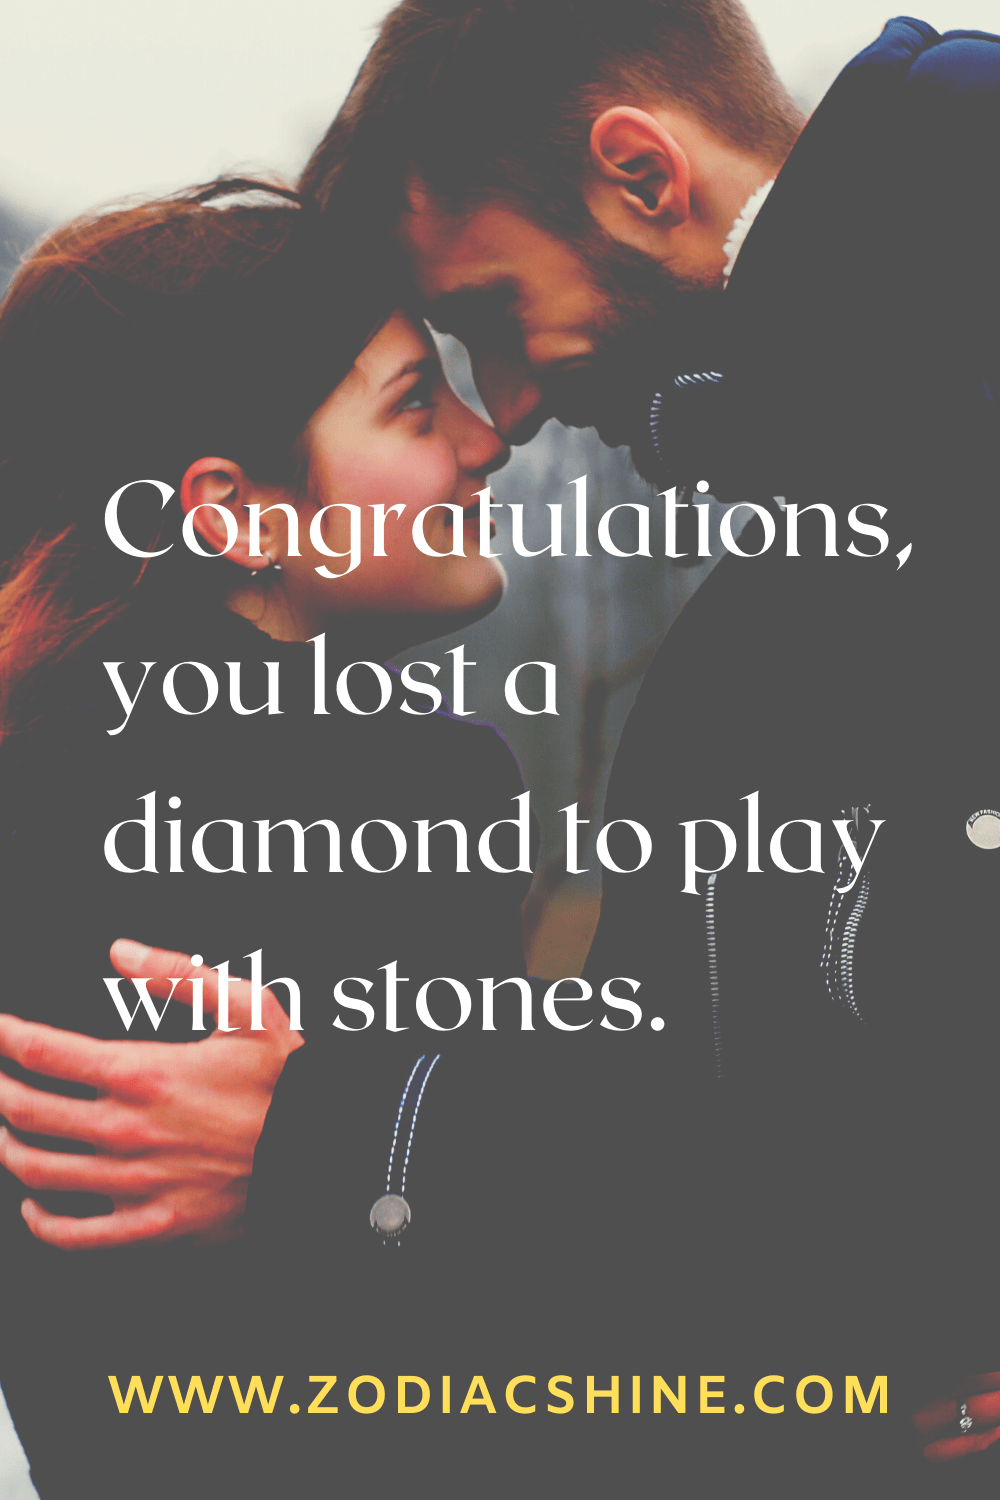 Congratulations You Lost A Diamond To Play With Stones Relationship Goals Cuddling Quotes About Love And Relationships Relationship Goals Boyfriends